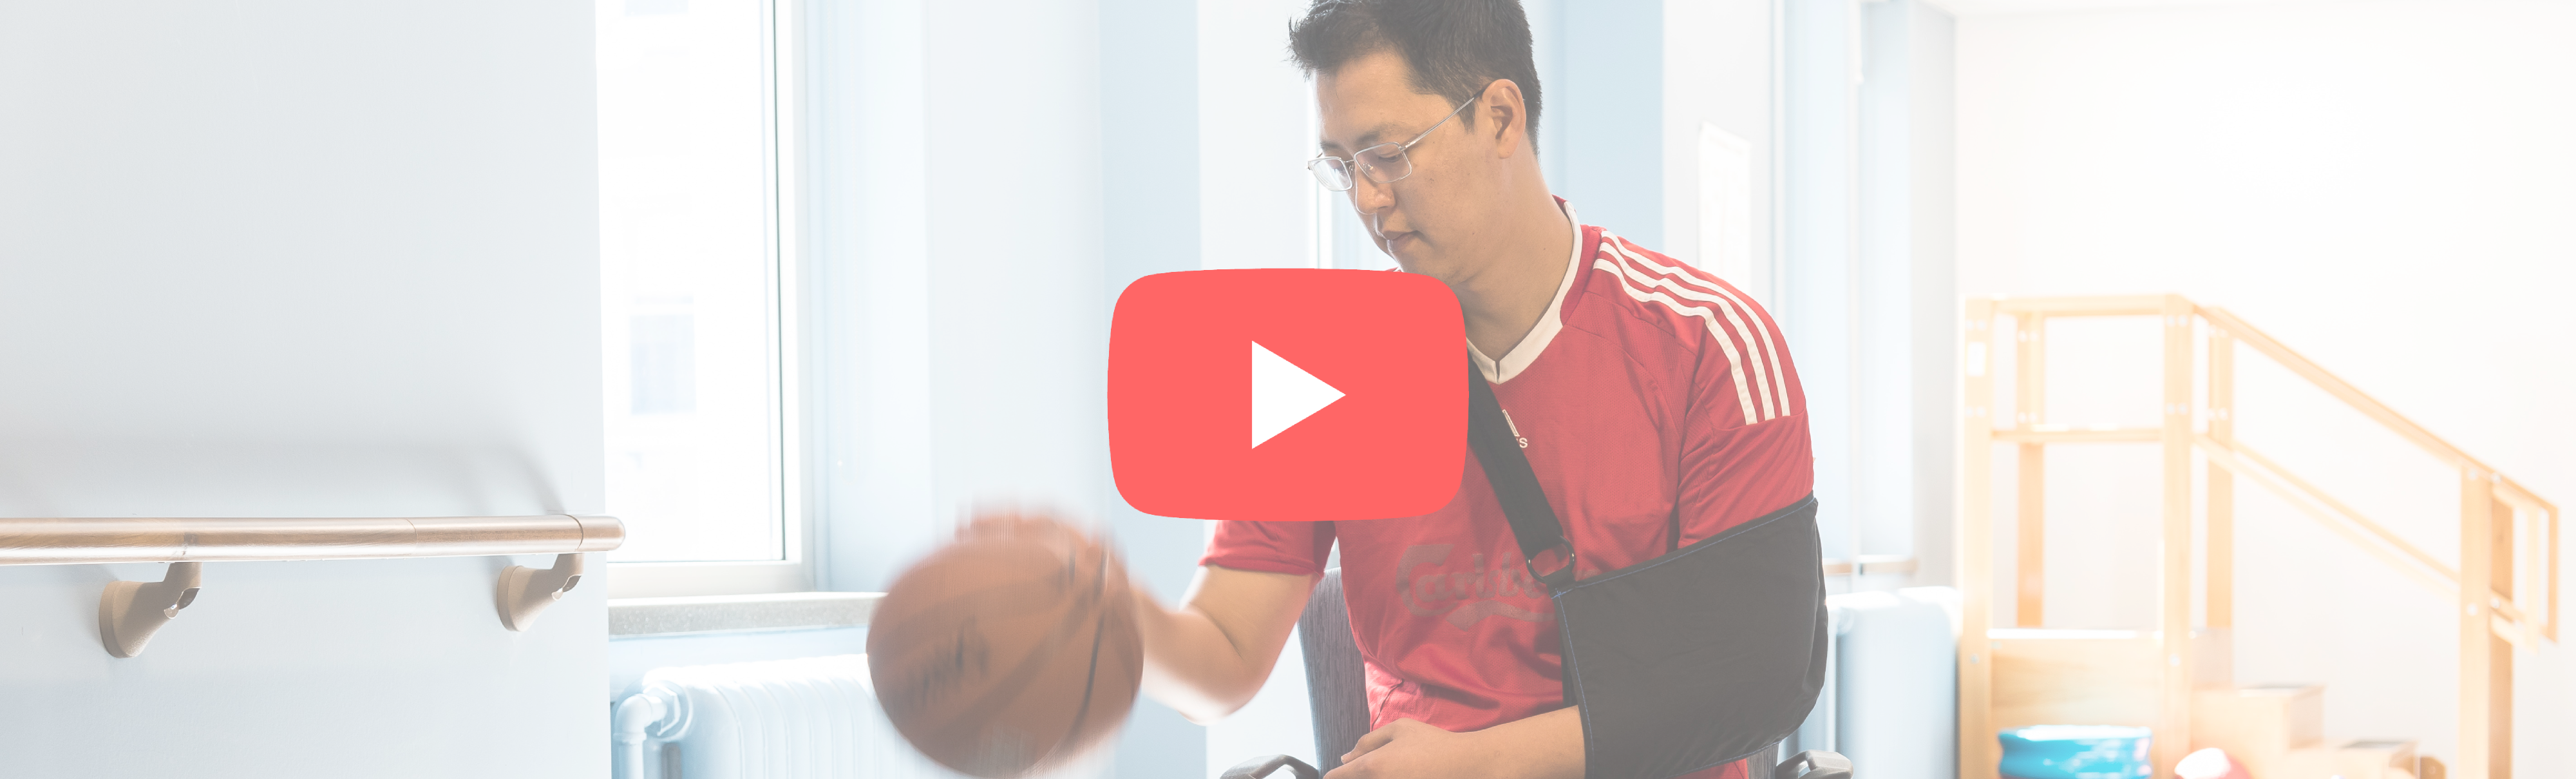 rehab patient dribbling ball